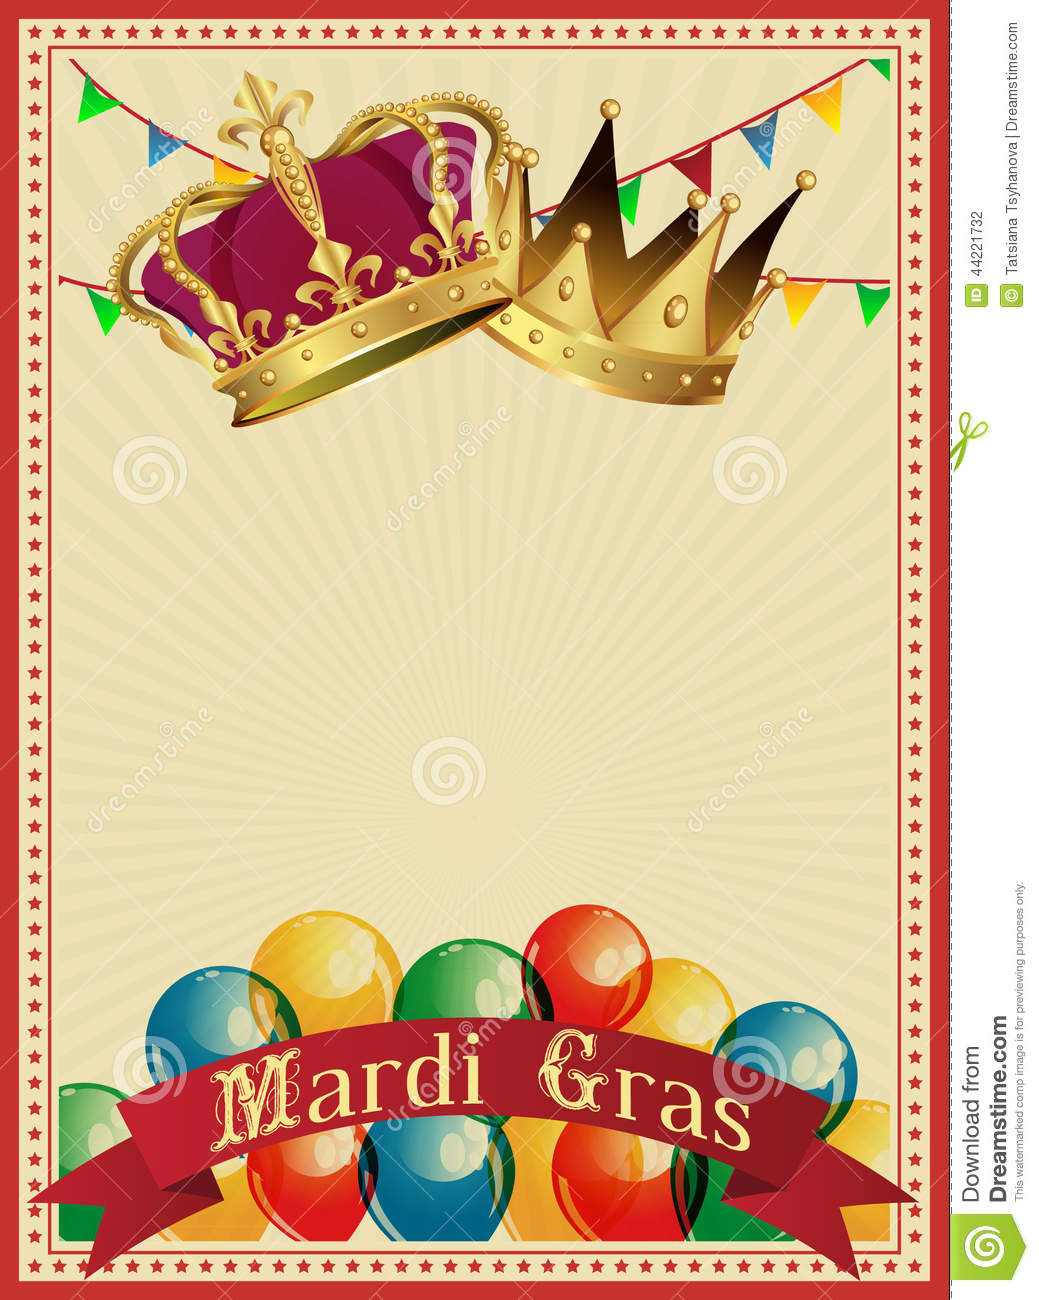 Mardi Gras Pictures Beads